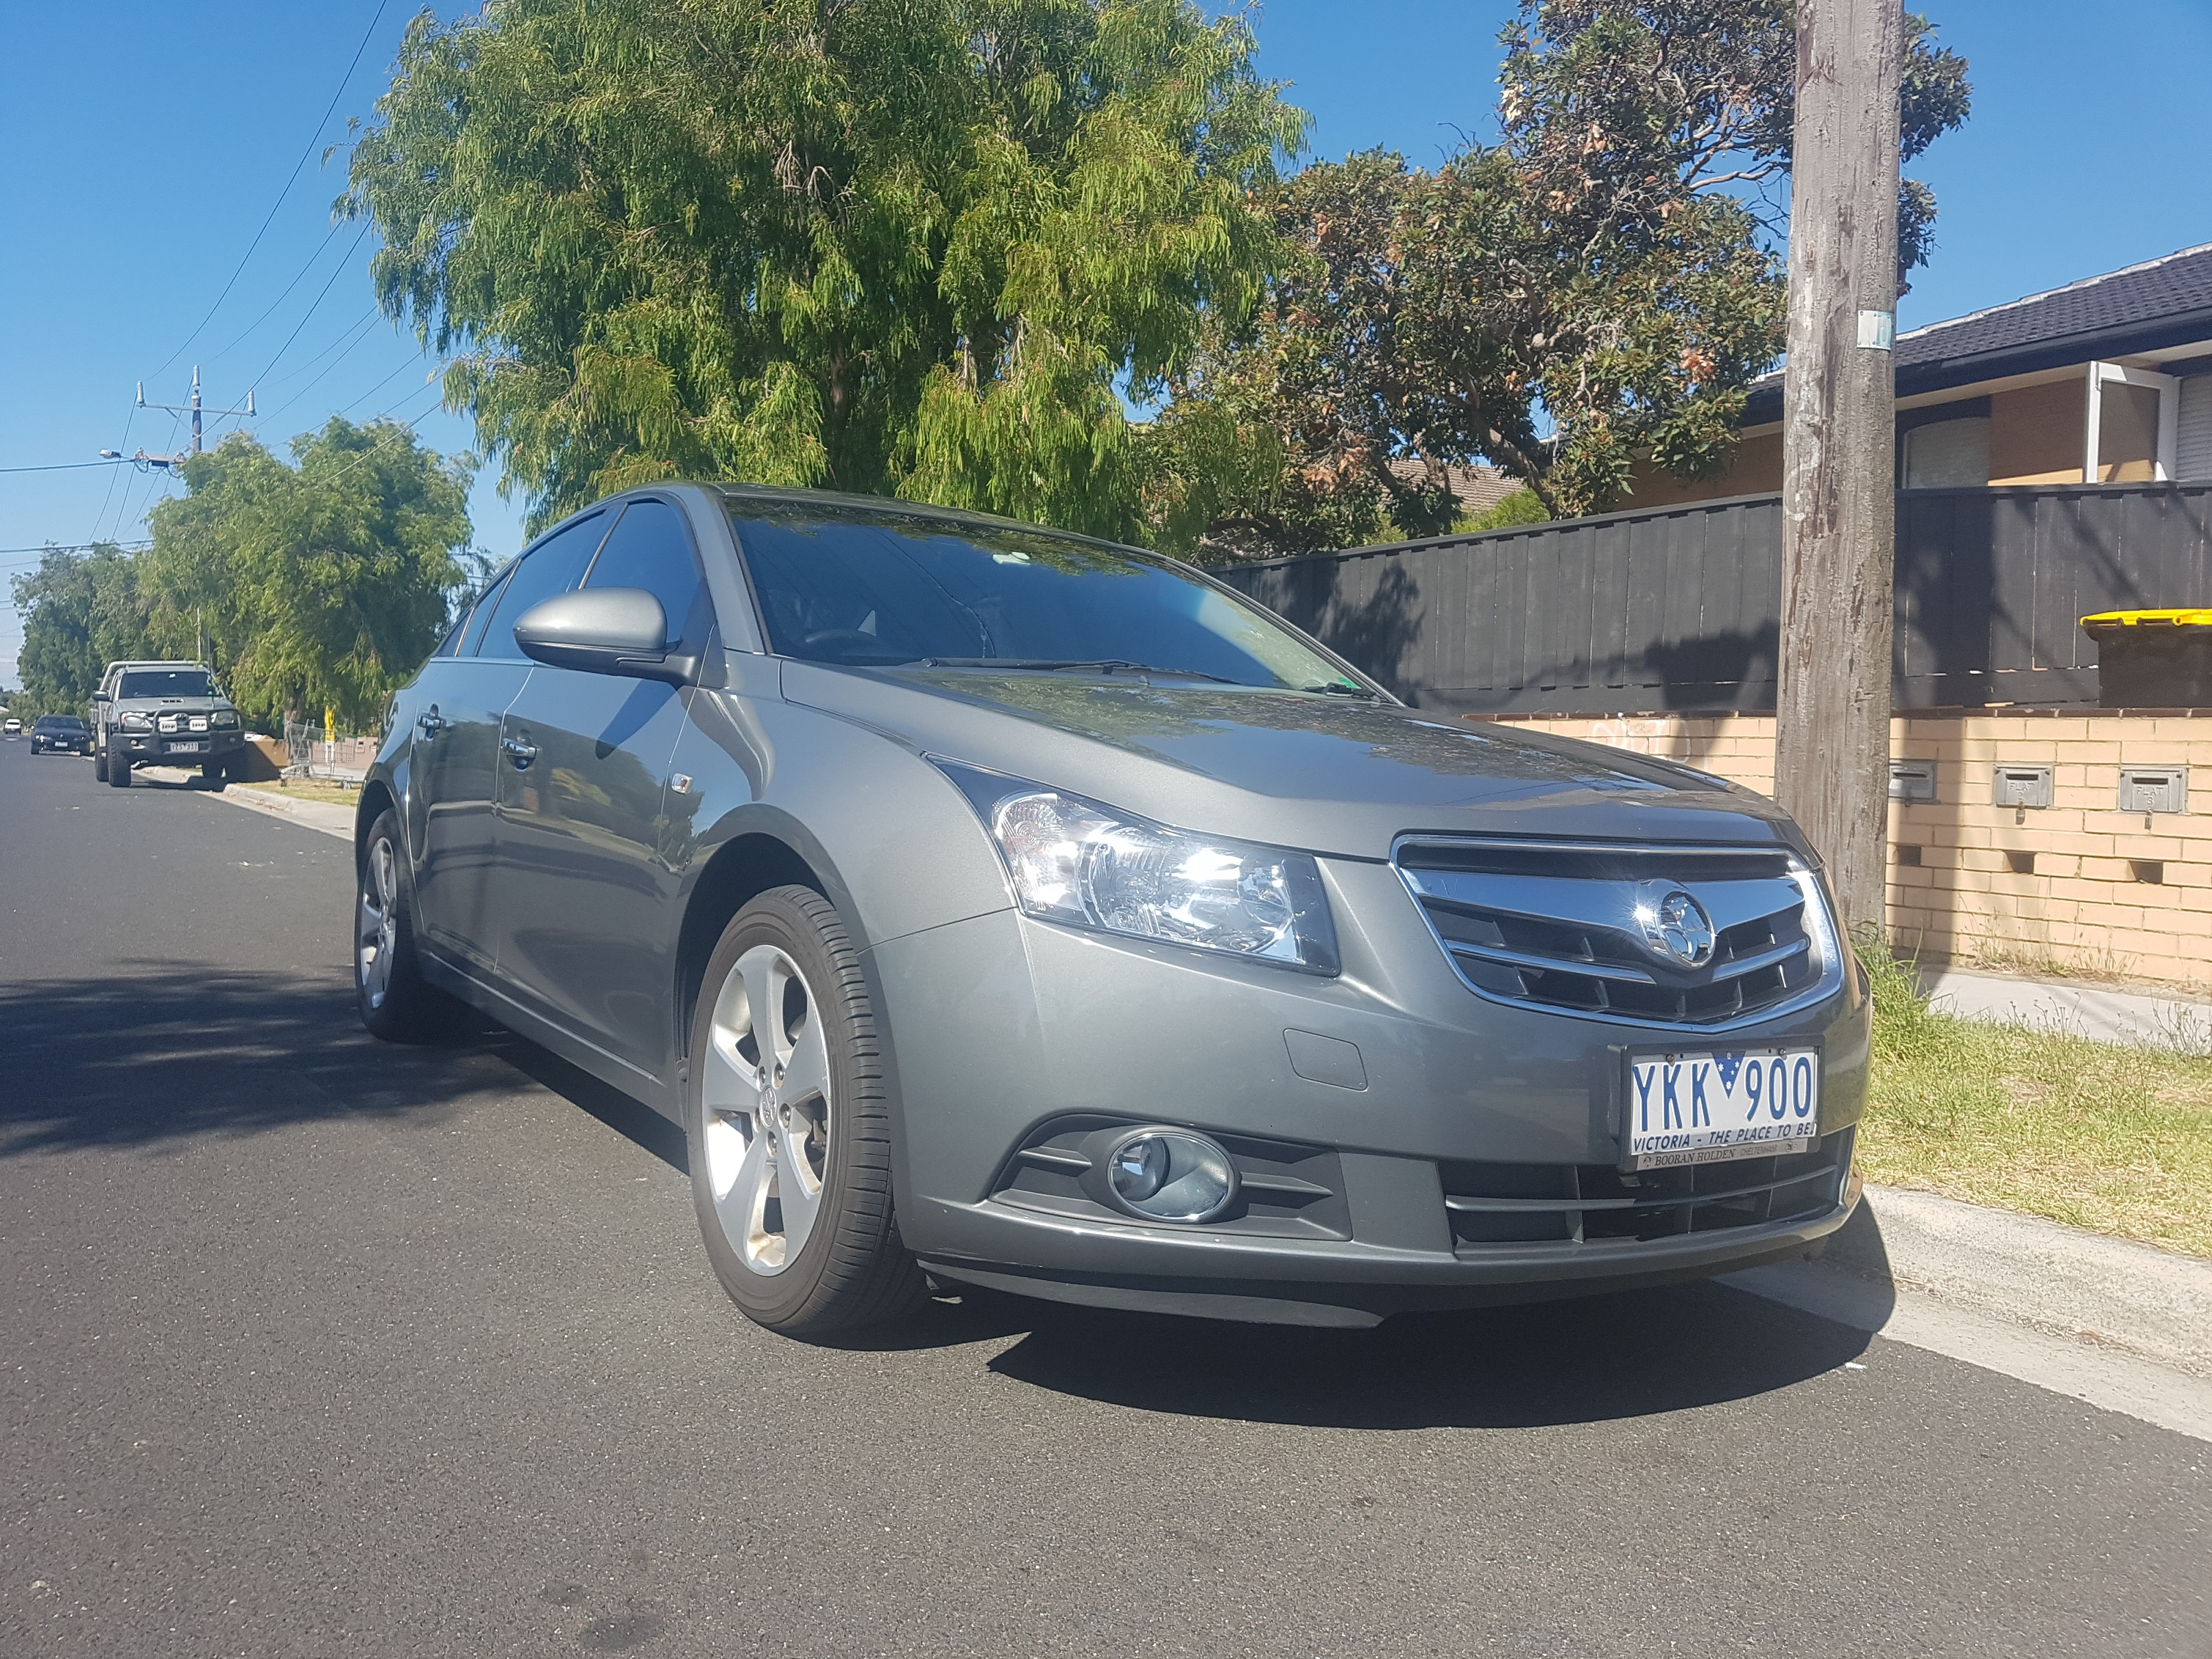 2011 Holden Cruze Cdx Jg Car Sales Vic Melbourne 3003660